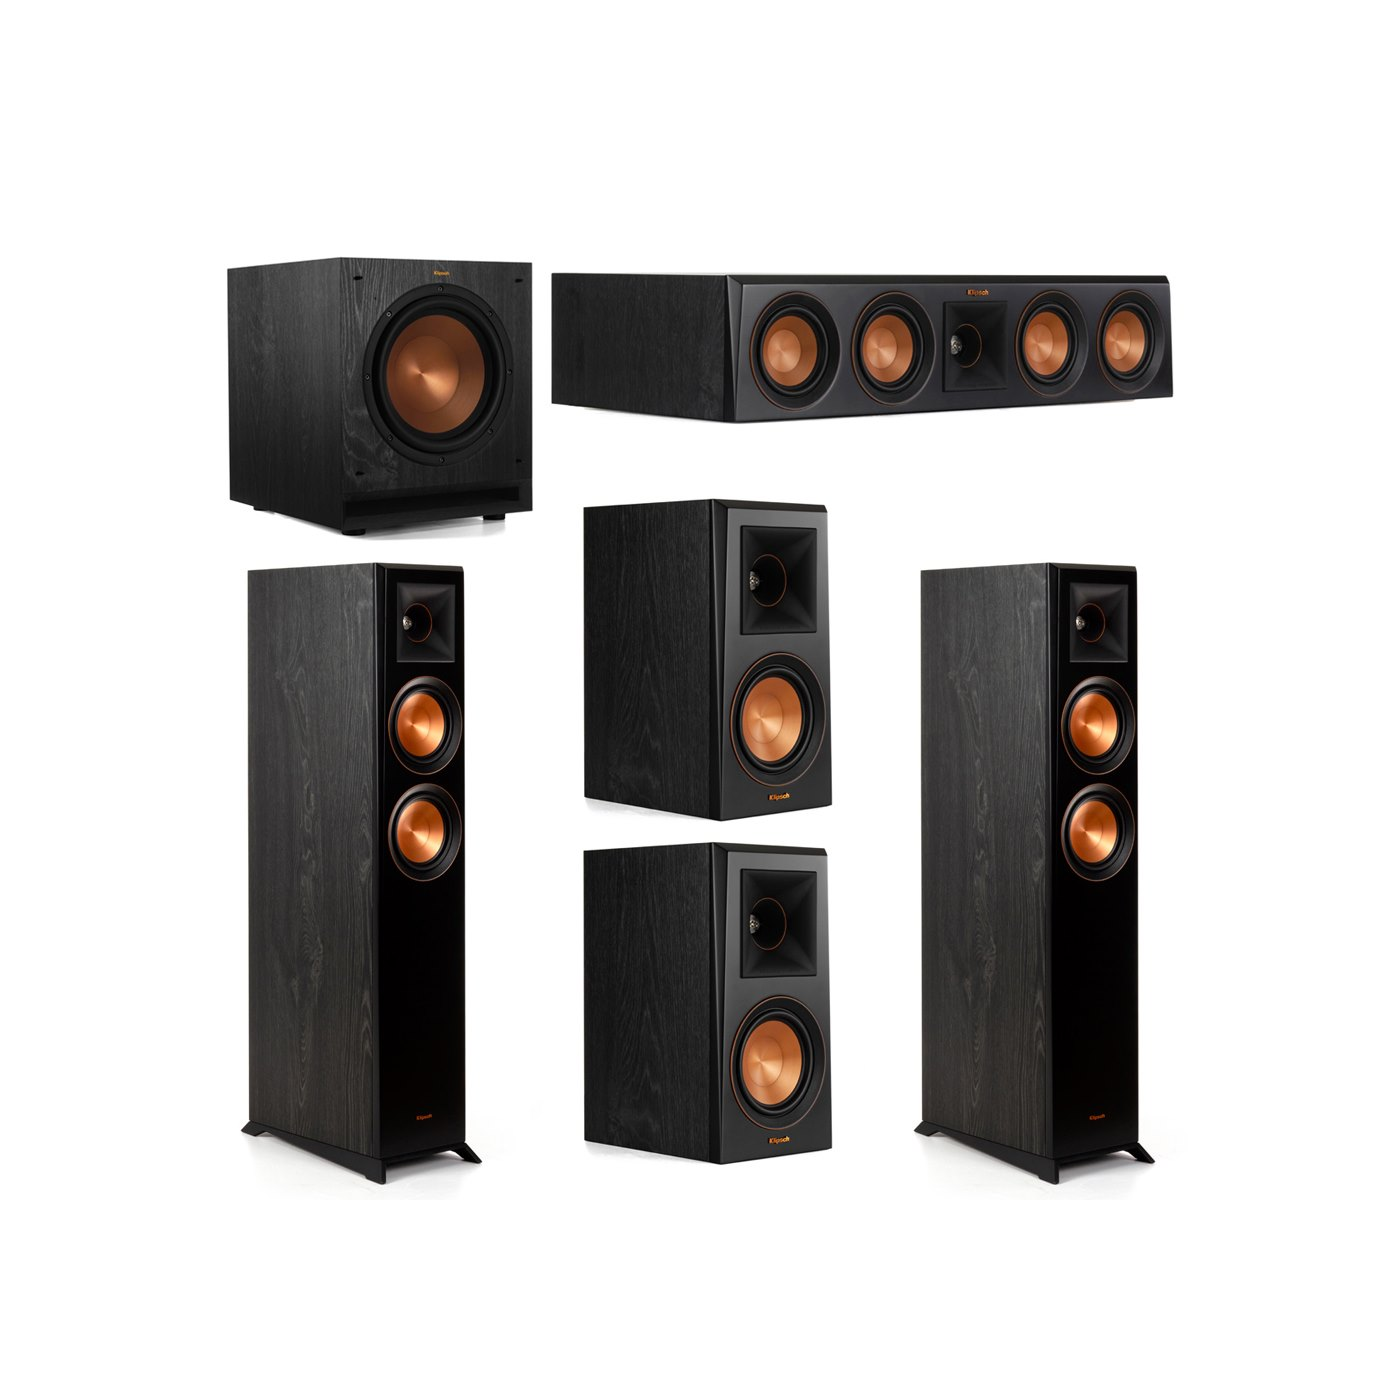 Klipsch 5.1 System with 2 RP-5000F Floorstanding Speakers, 1 Klipsch RP-404C Center Speaker, 2 Klipsch RP-500M Surround Speakers, 1 Klipsch SPL-100 Subwoofer